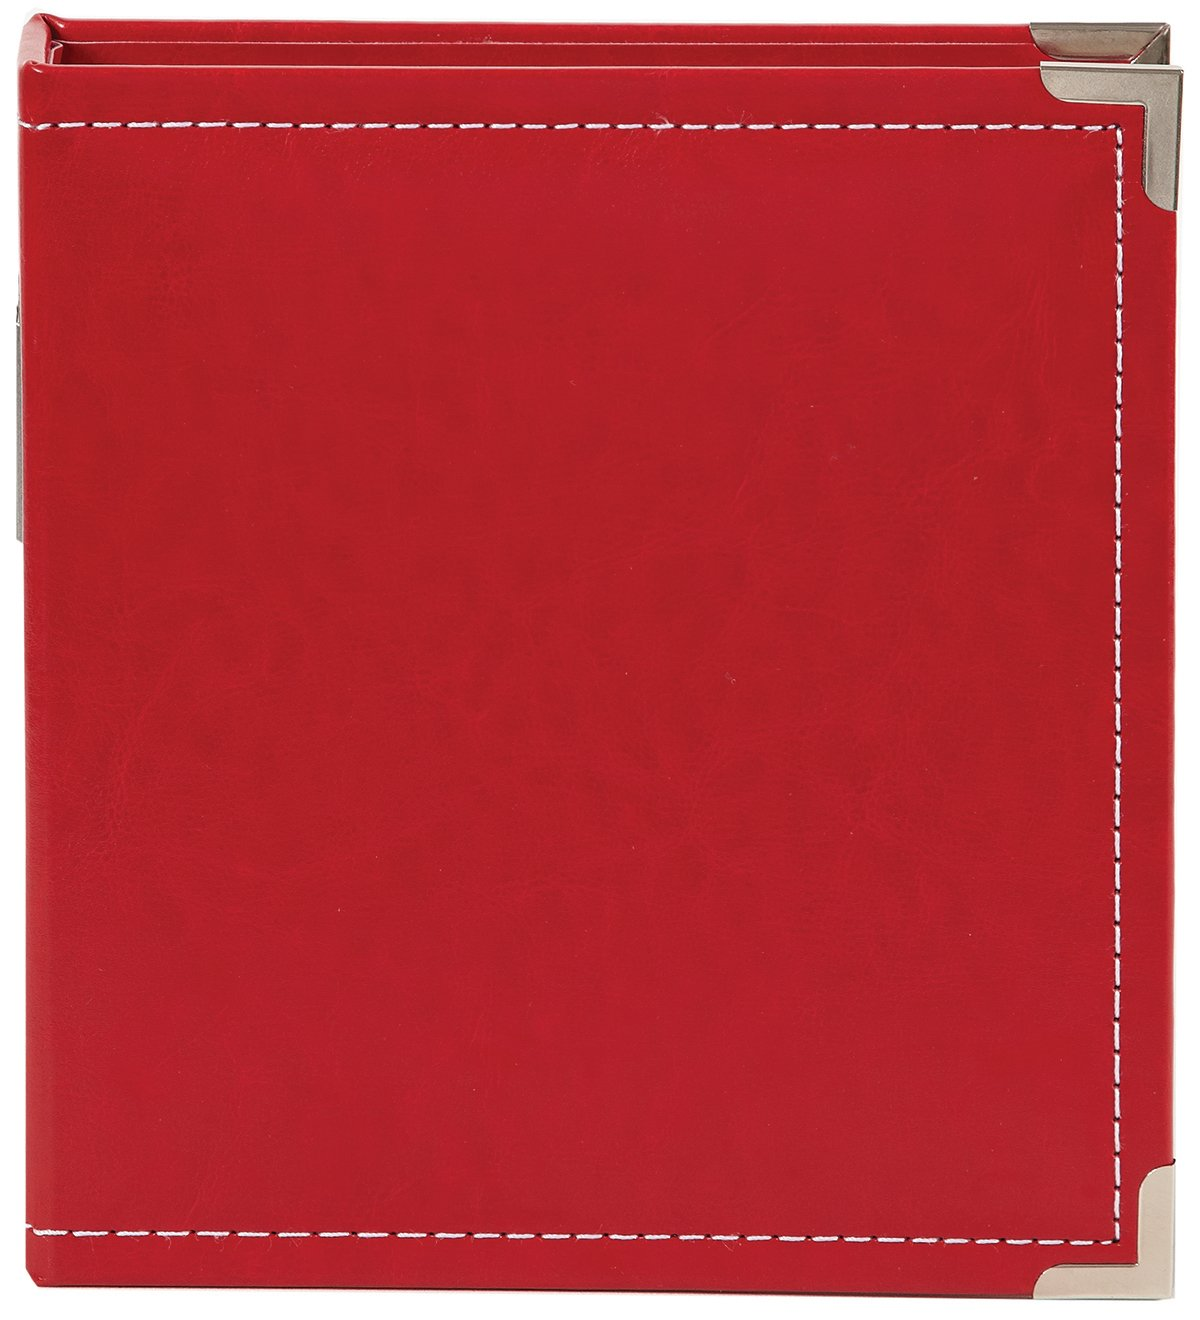 Simple Stories Faux Leather Binder, 6 by 8-Inch, Red